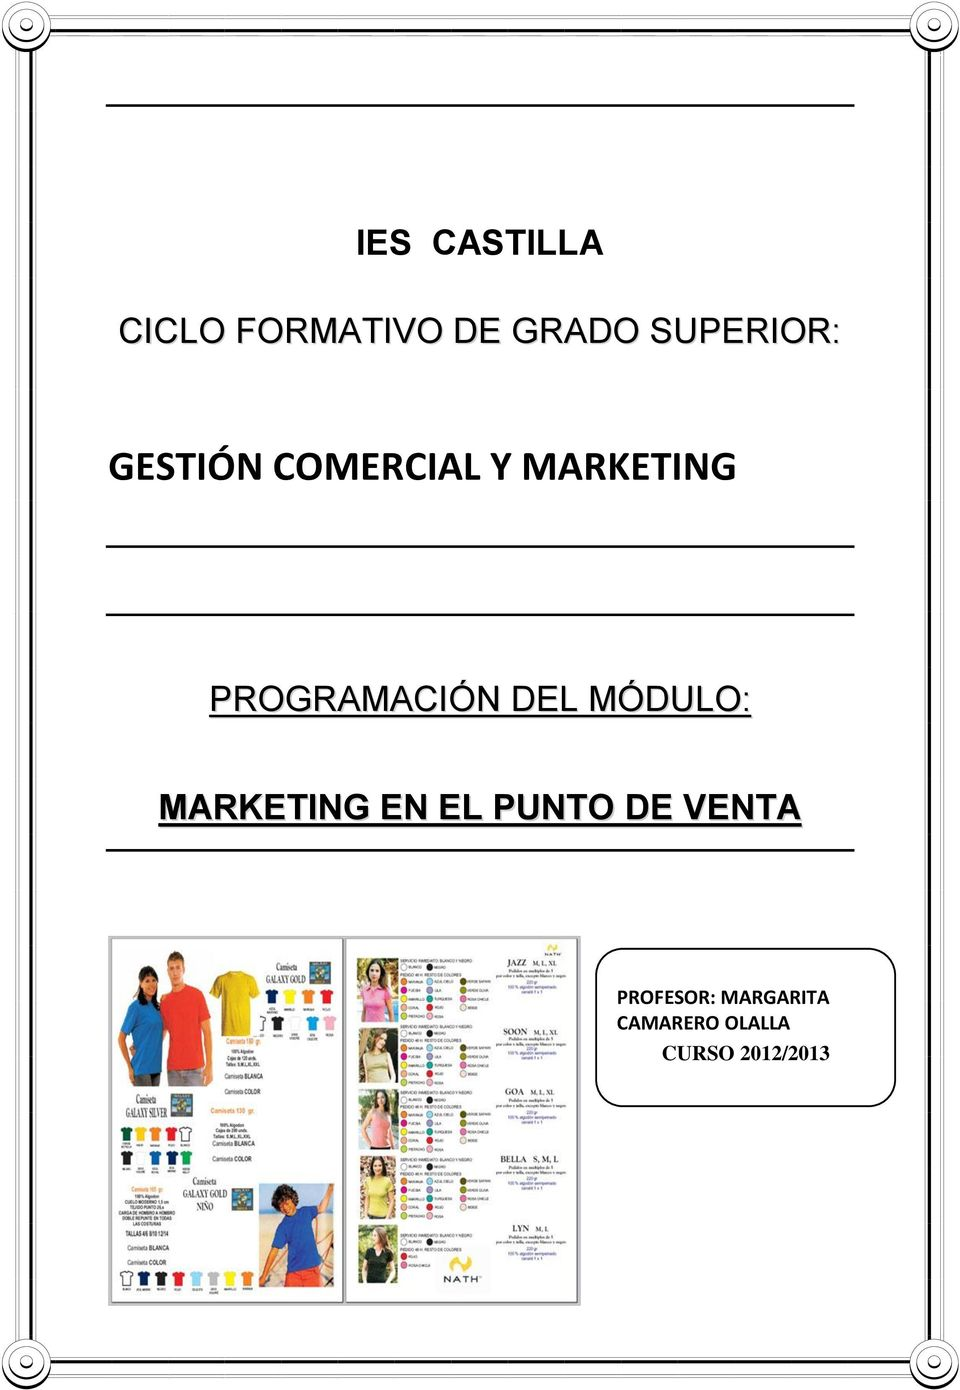 PROGRAMACIÓN DEL MÓDULO: MARKETING EN EL PUNTO